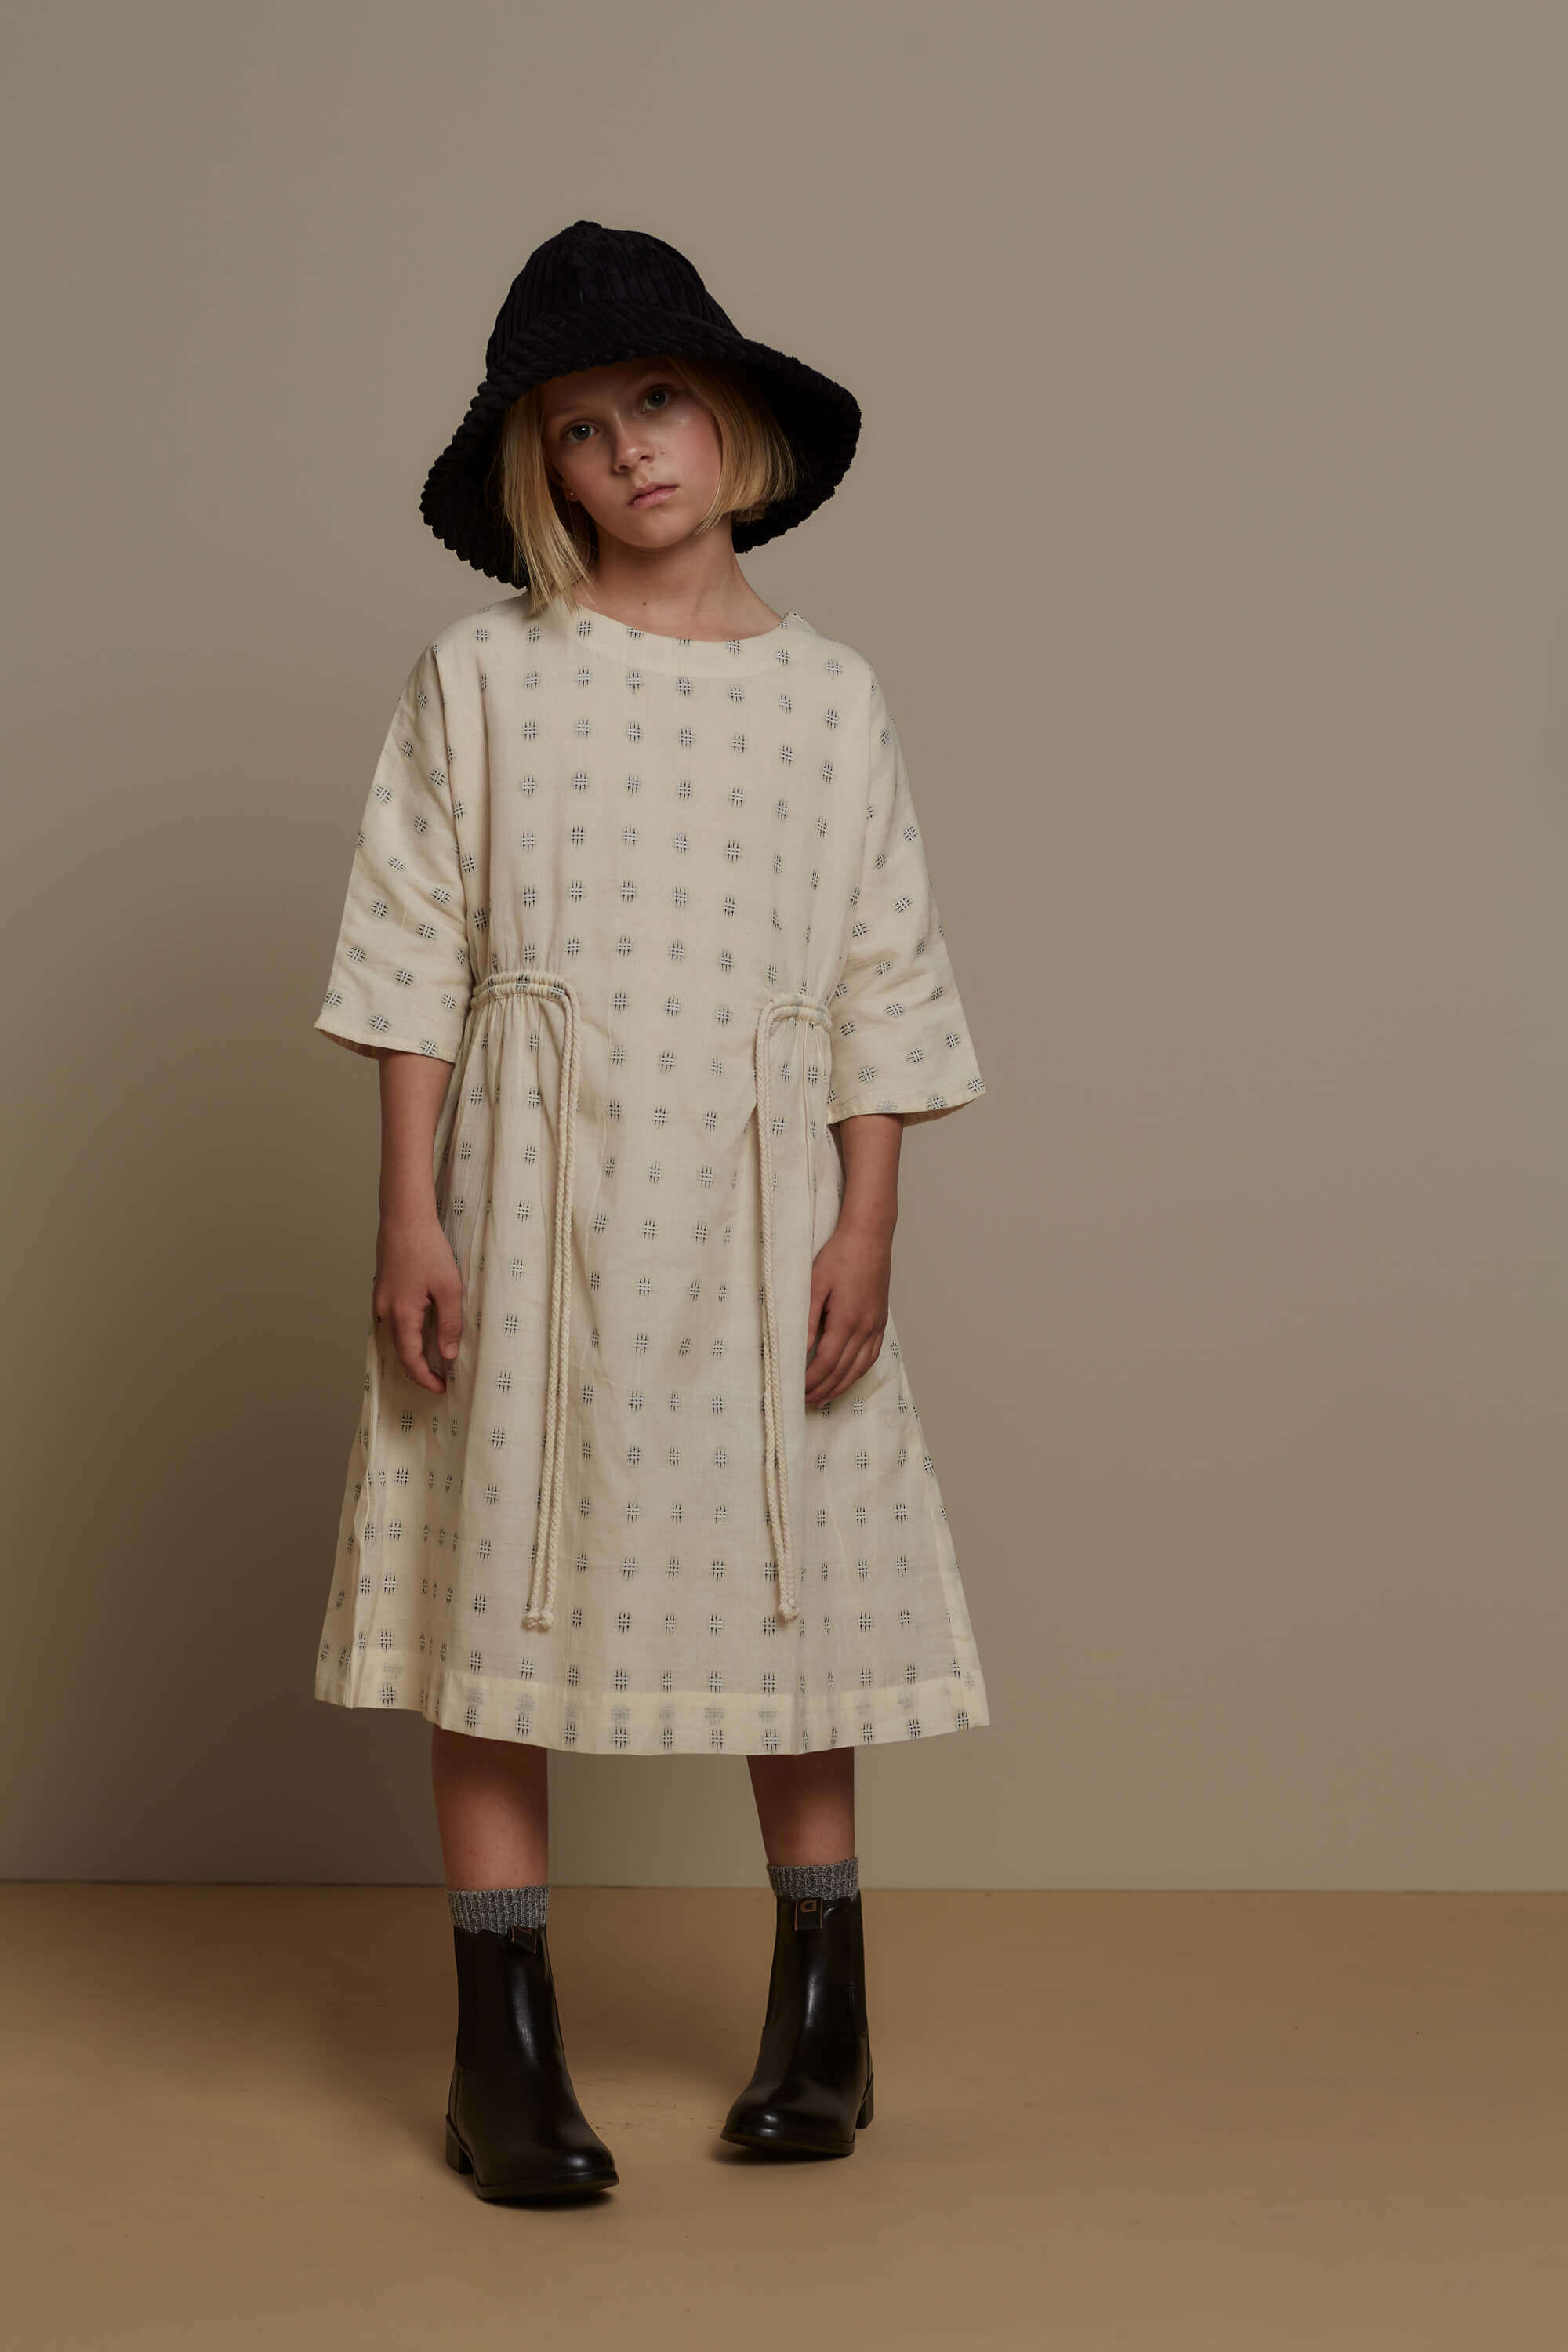 Feather Drum Sloane Dress Embroidered | Tiny People